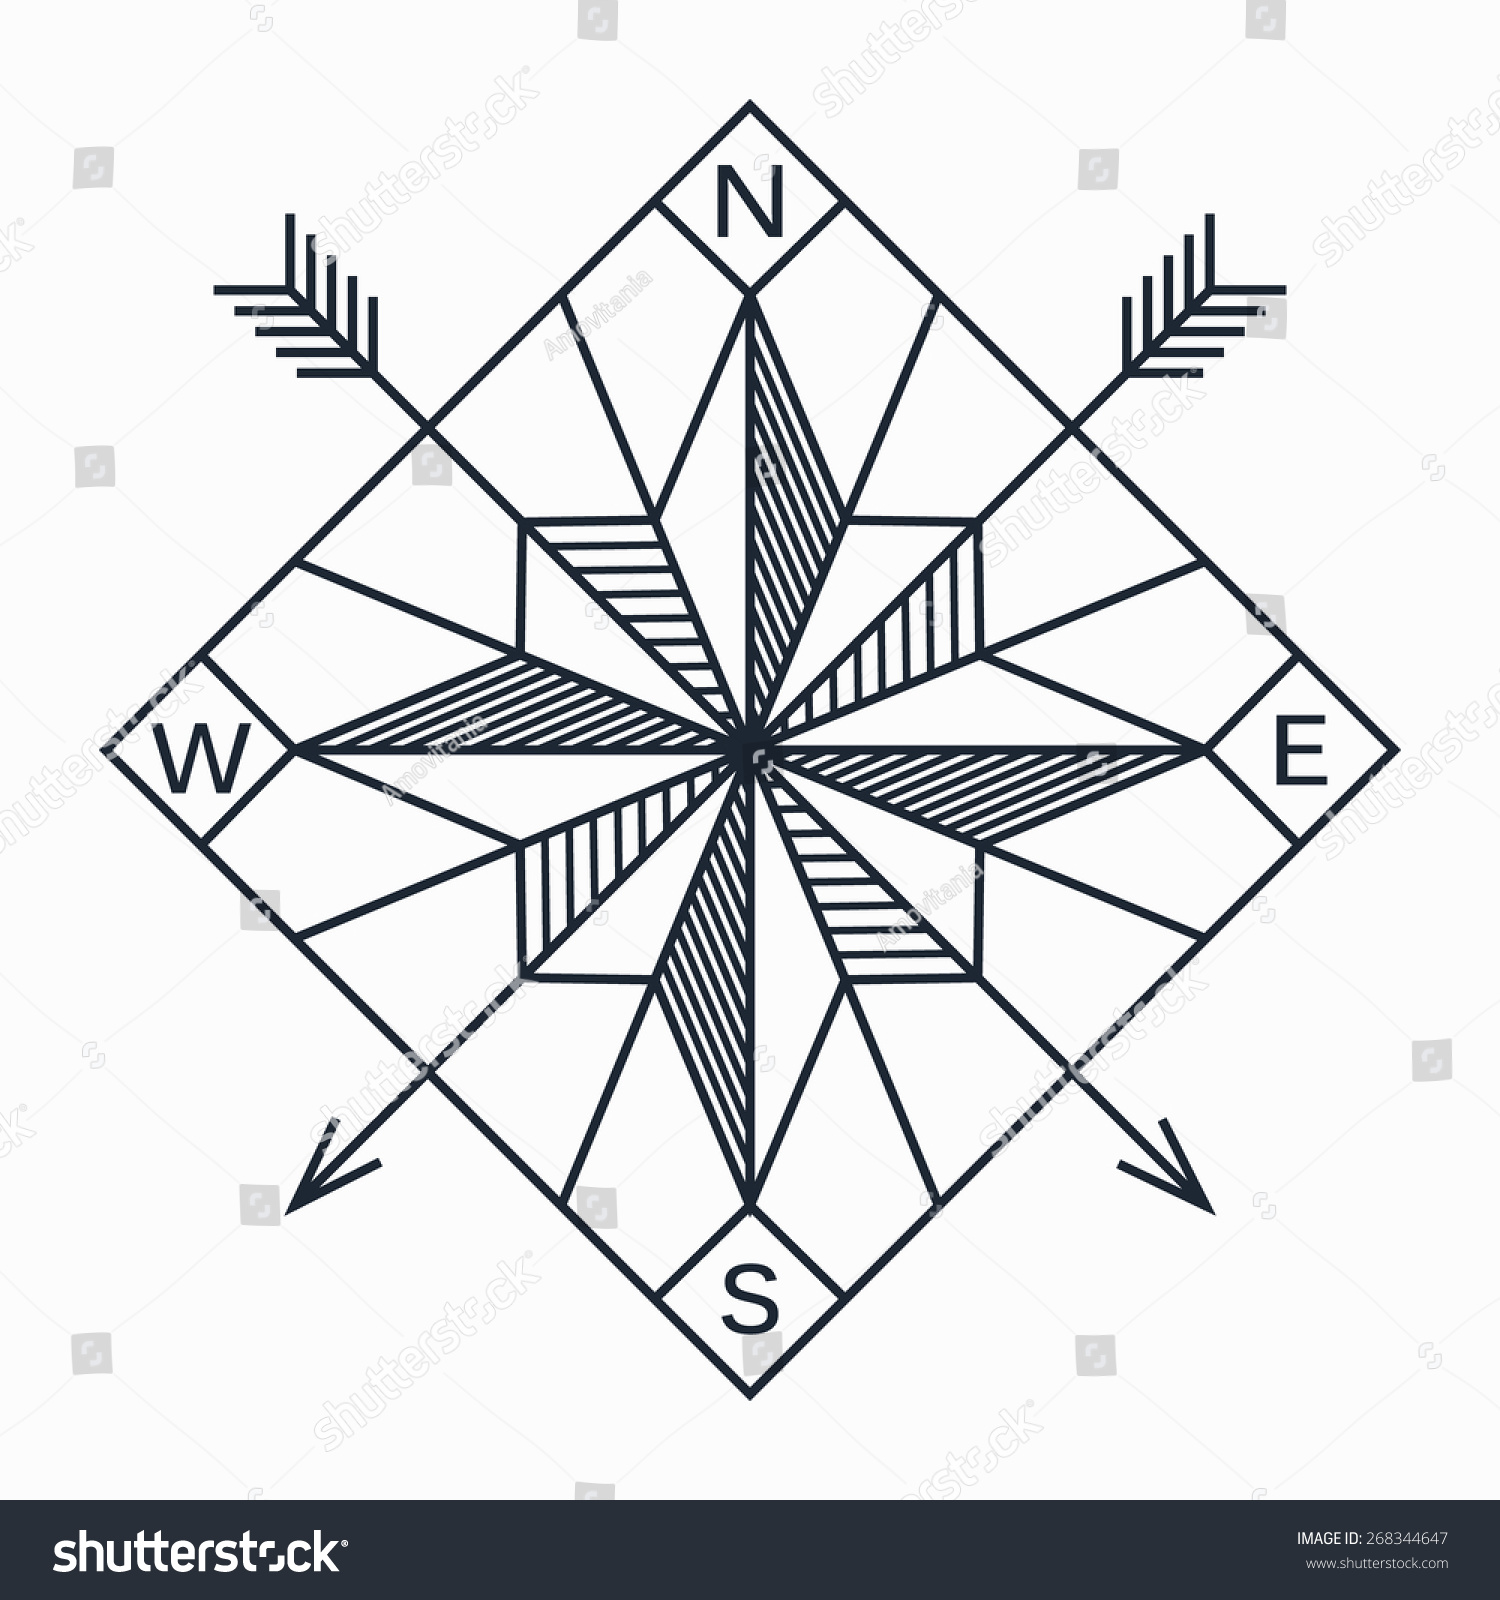 Vector Abstract Geometric Navigation Star Compass Stock